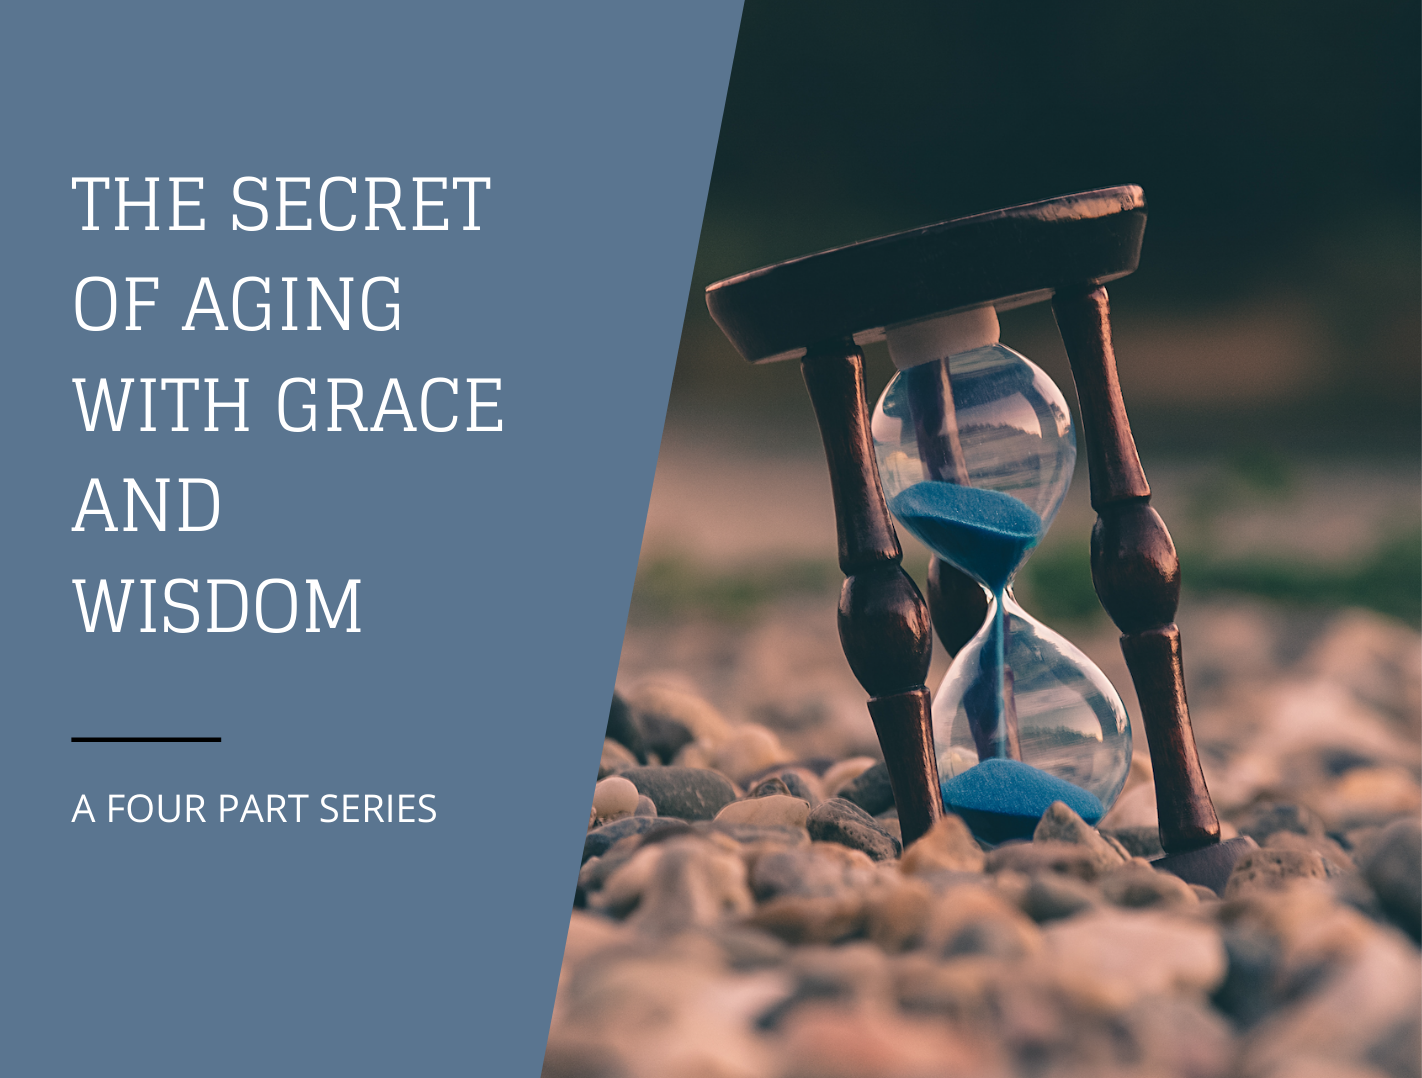 The four parts of the Secret of Aging With Grace and Wisdom. 1. The Two Phases of Life, 2. The First Half of Life, 3. The Bridge of Transformation, 4. The Second Half of Life